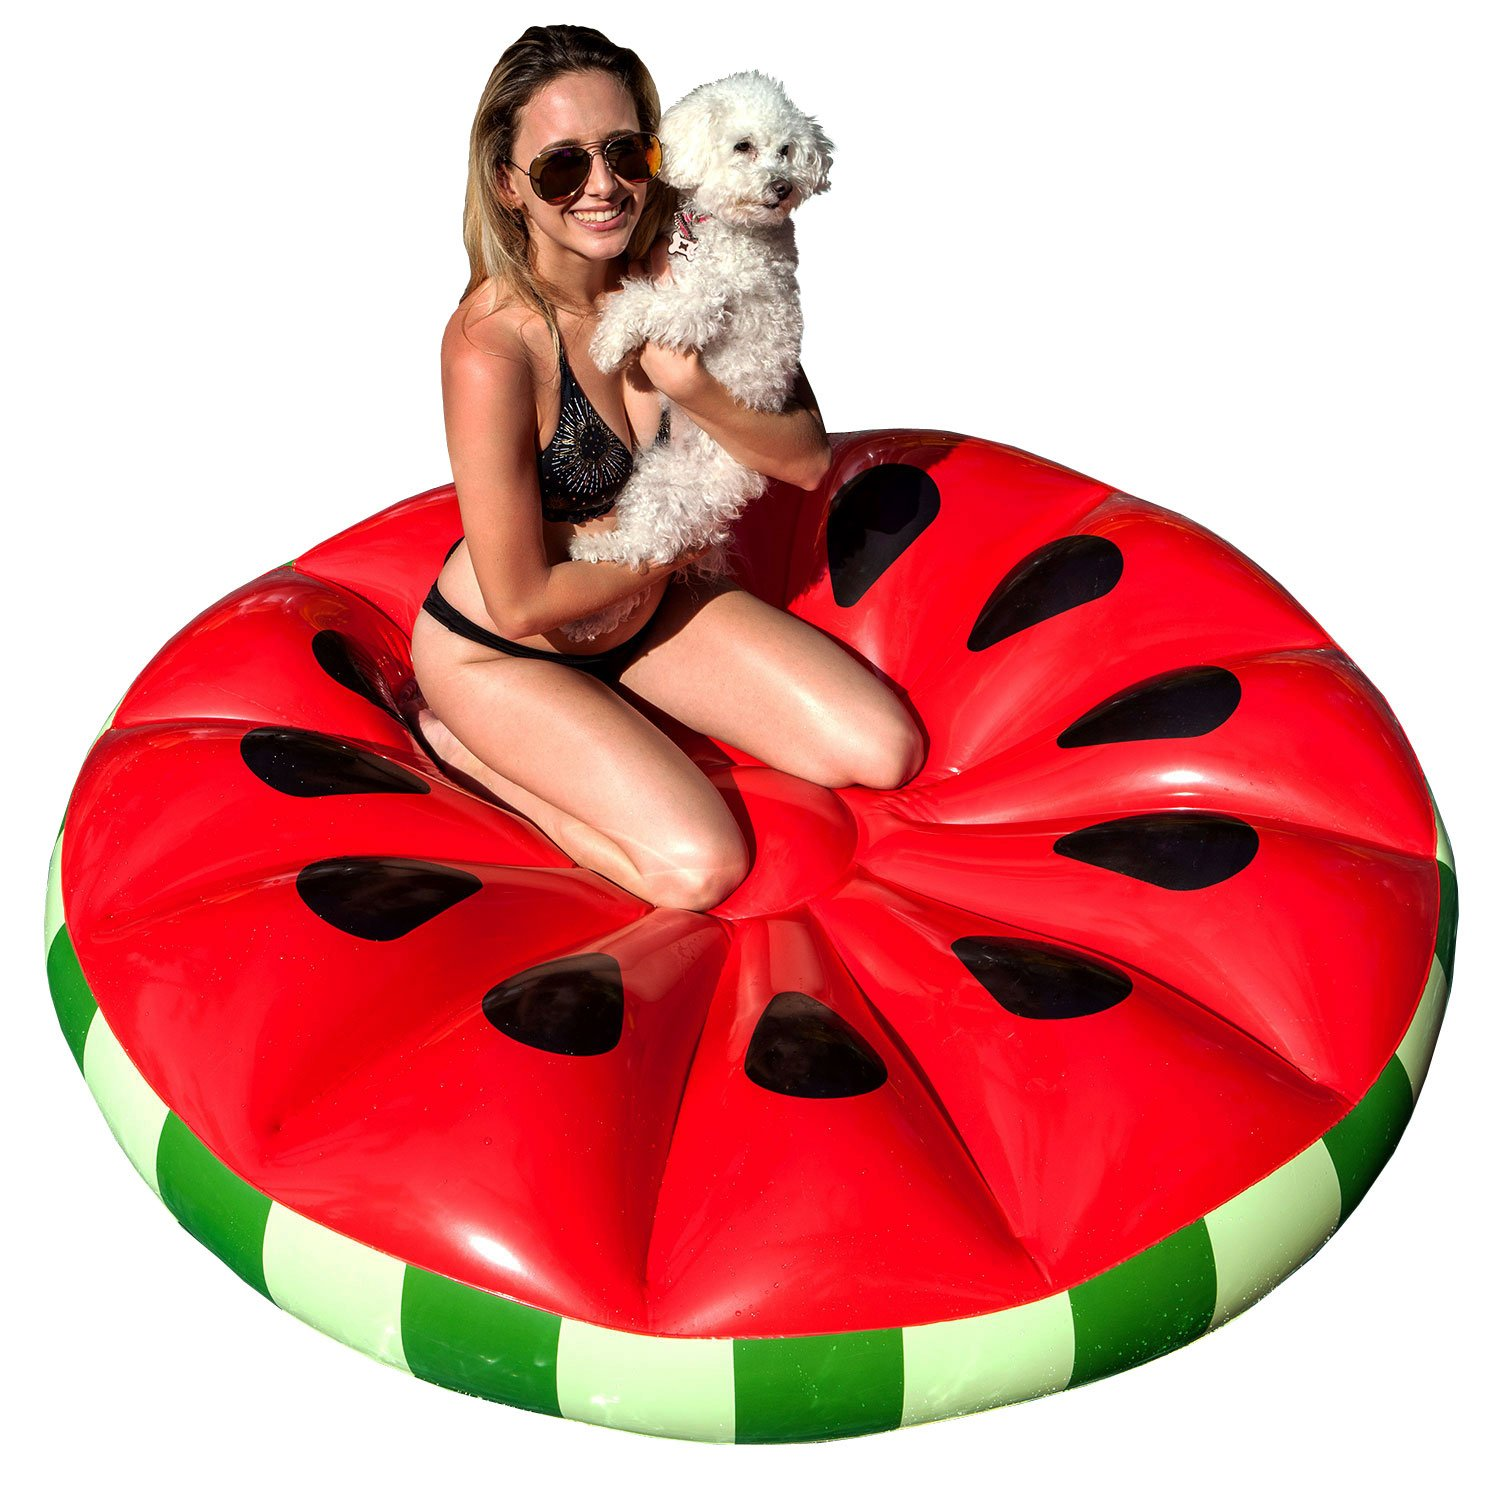 U.S. Pool Supply Giant 5 Foot Inflatable Watermelon Slice Pool Float - Fun Kids Swim Party Toy - Summer Pool Lounge Raft